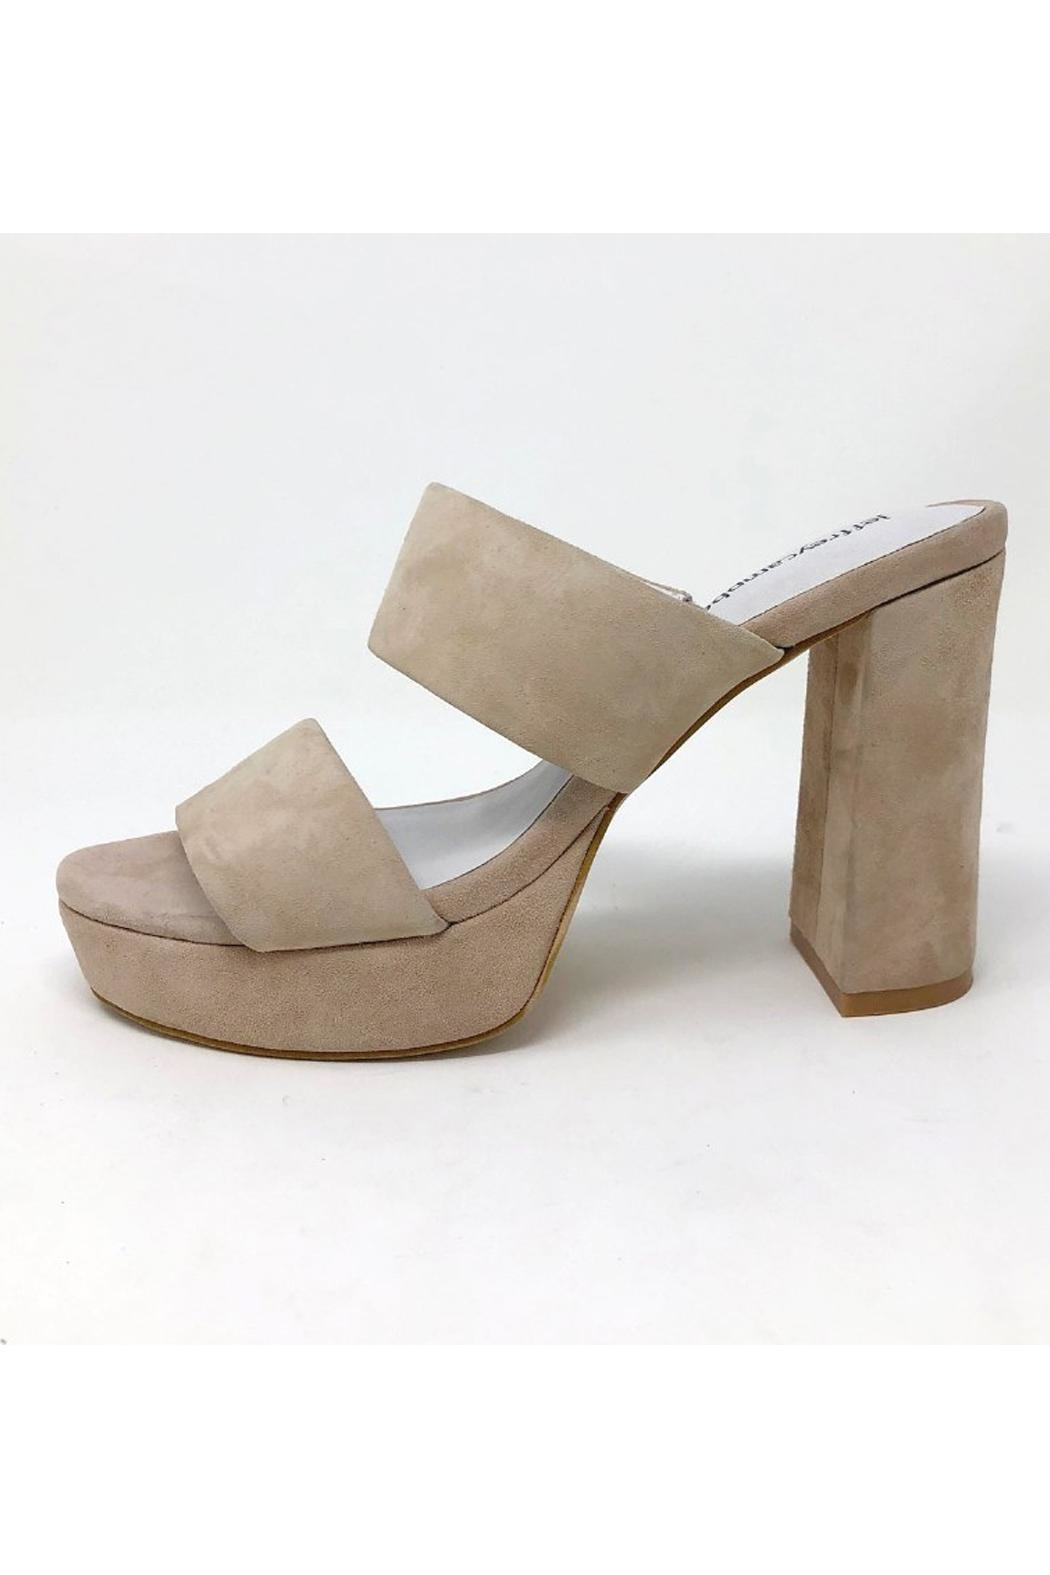 bfed6bdffcd2 Jeffrey Campbell Suede Chunky Heel from South Carolina by Baehr Feet ...